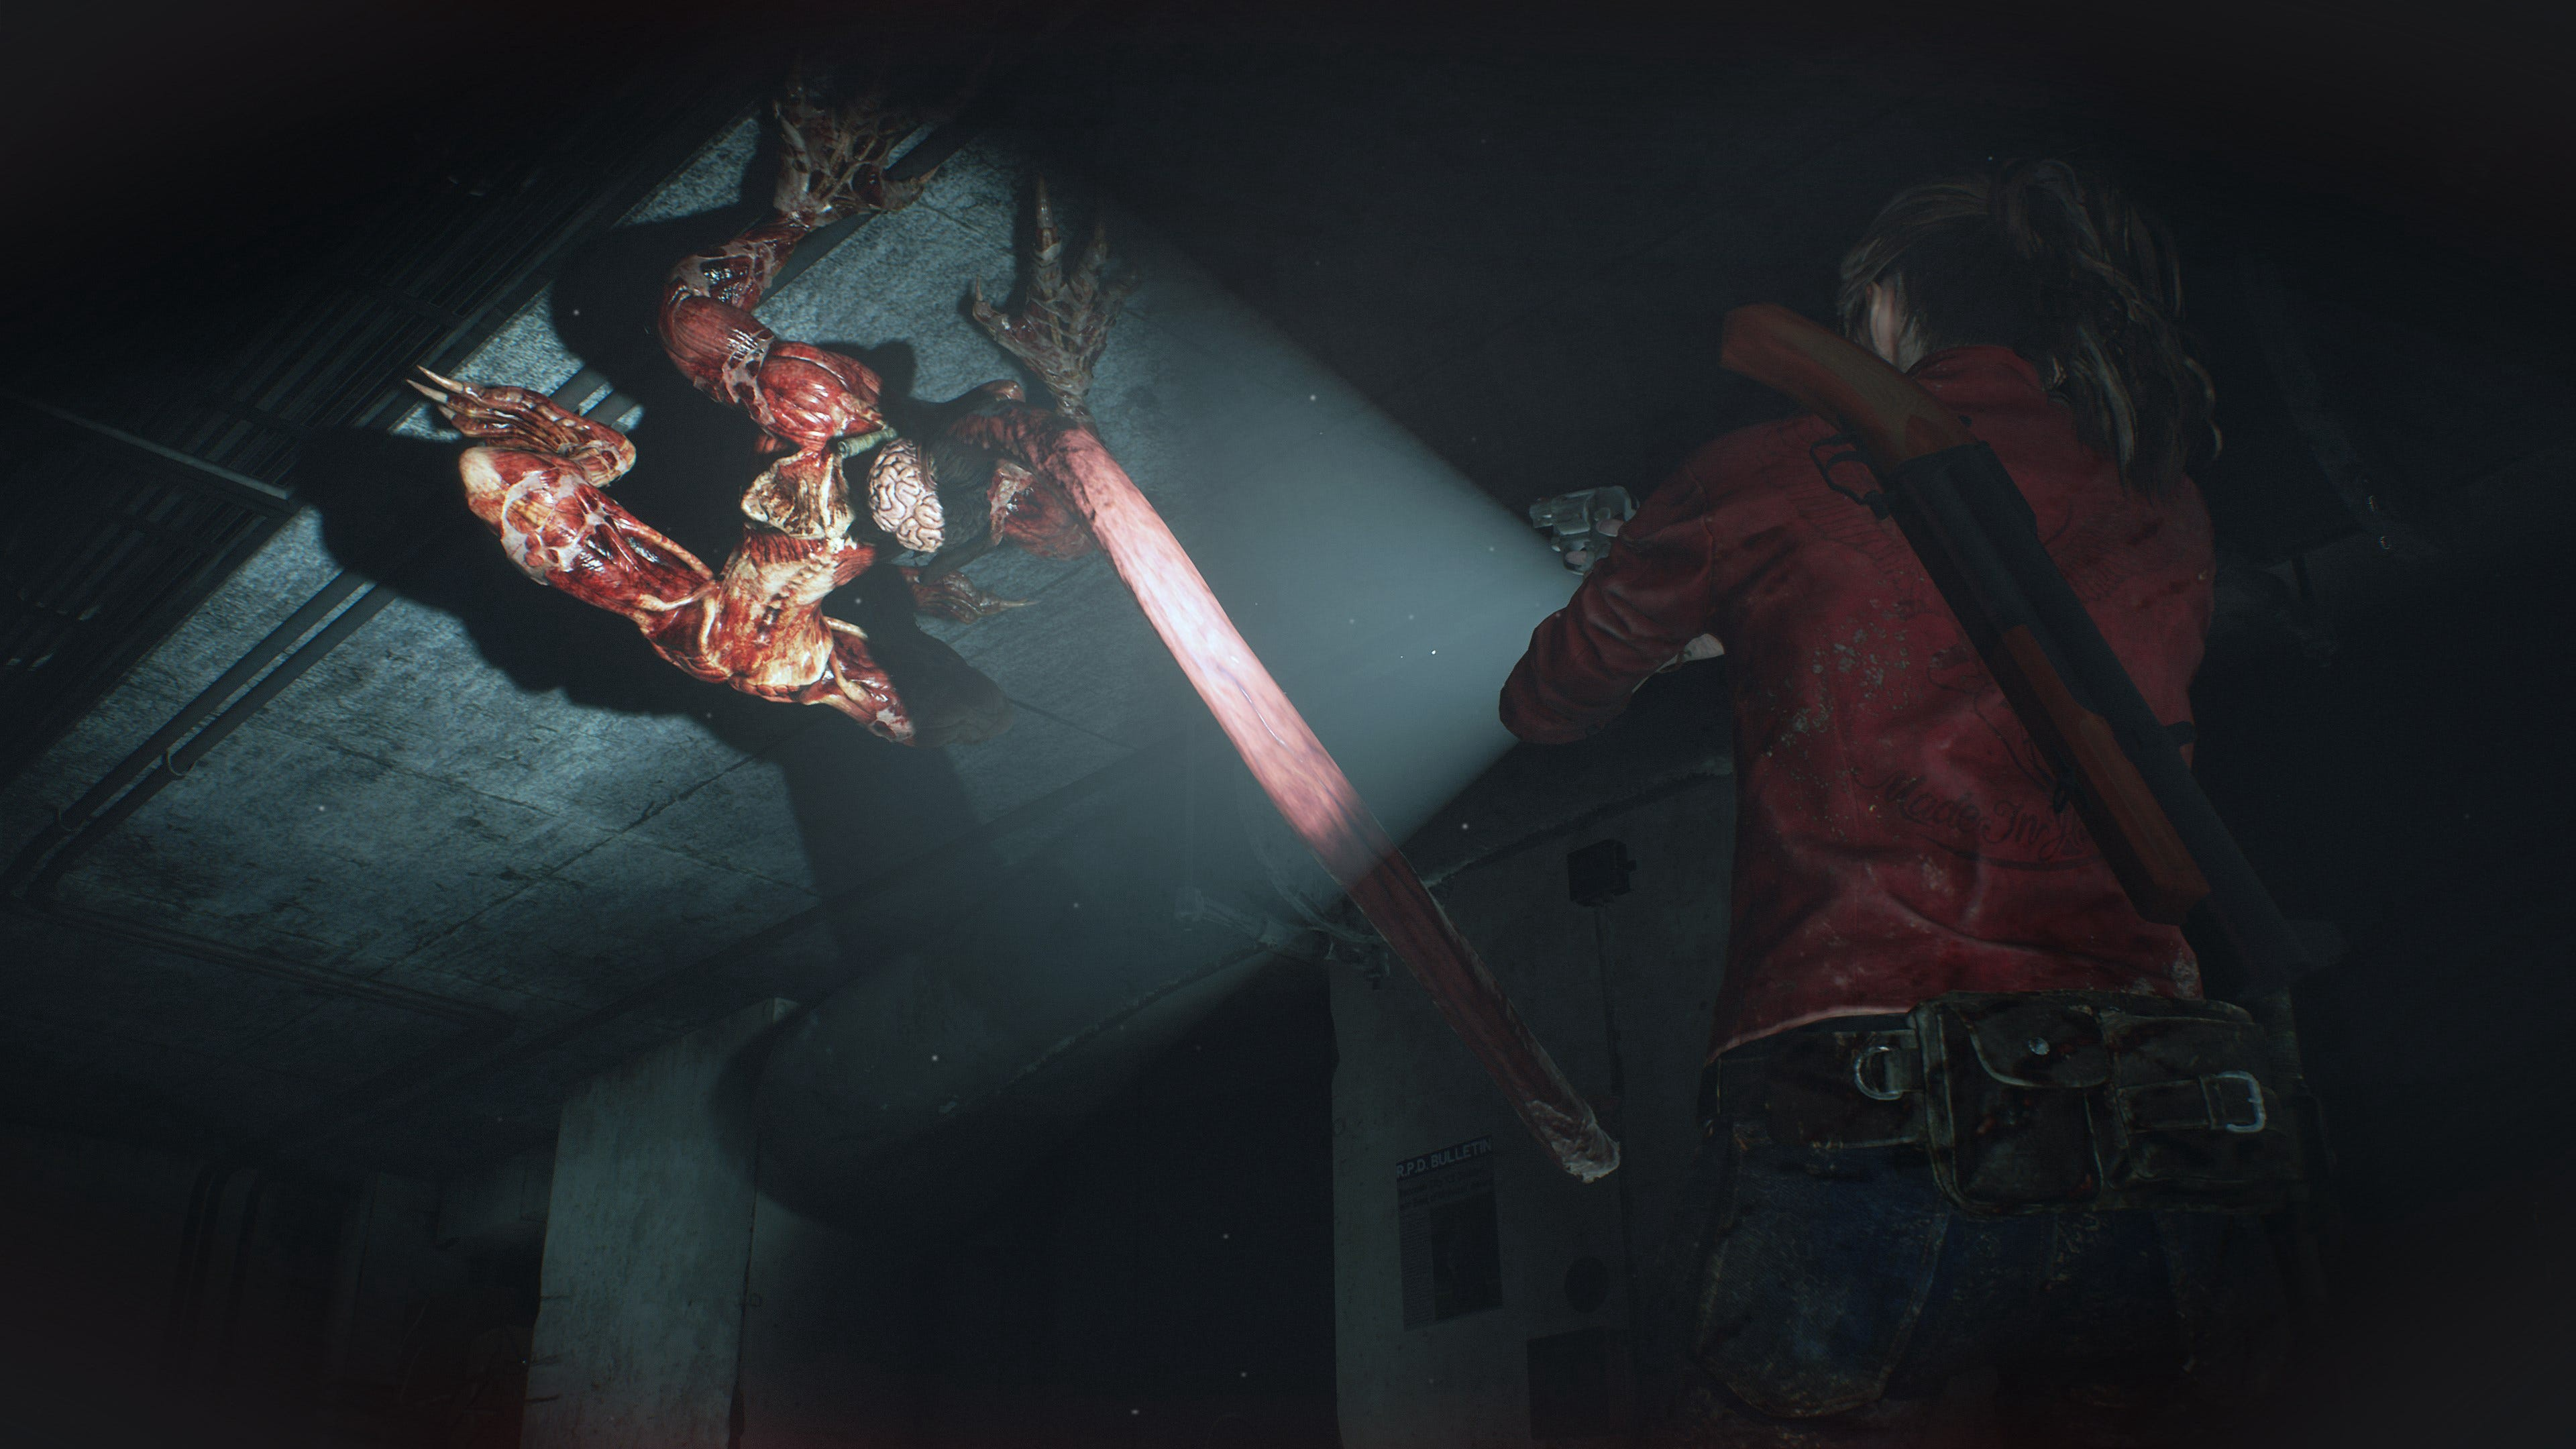 resident evil 2 remake graphics horror